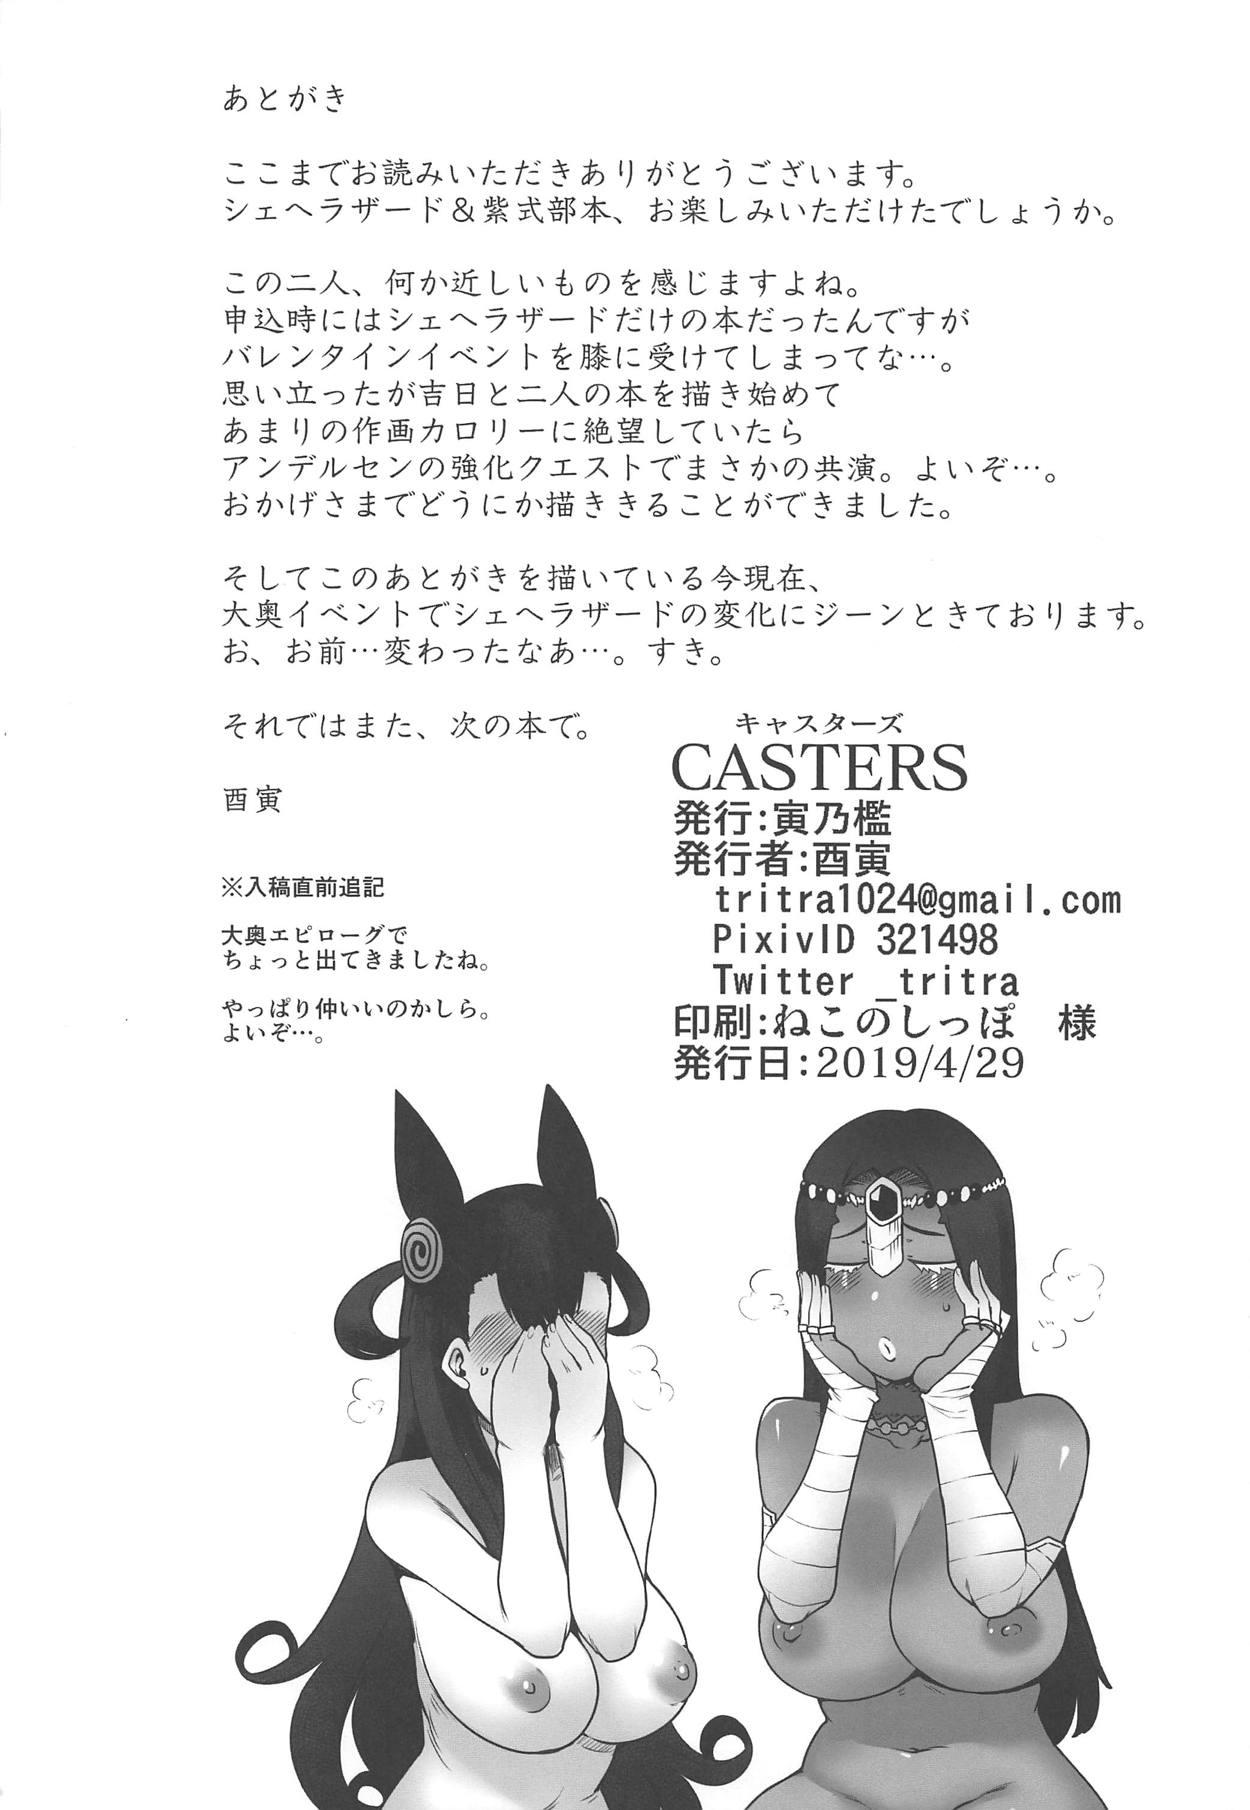 CASTERS 20